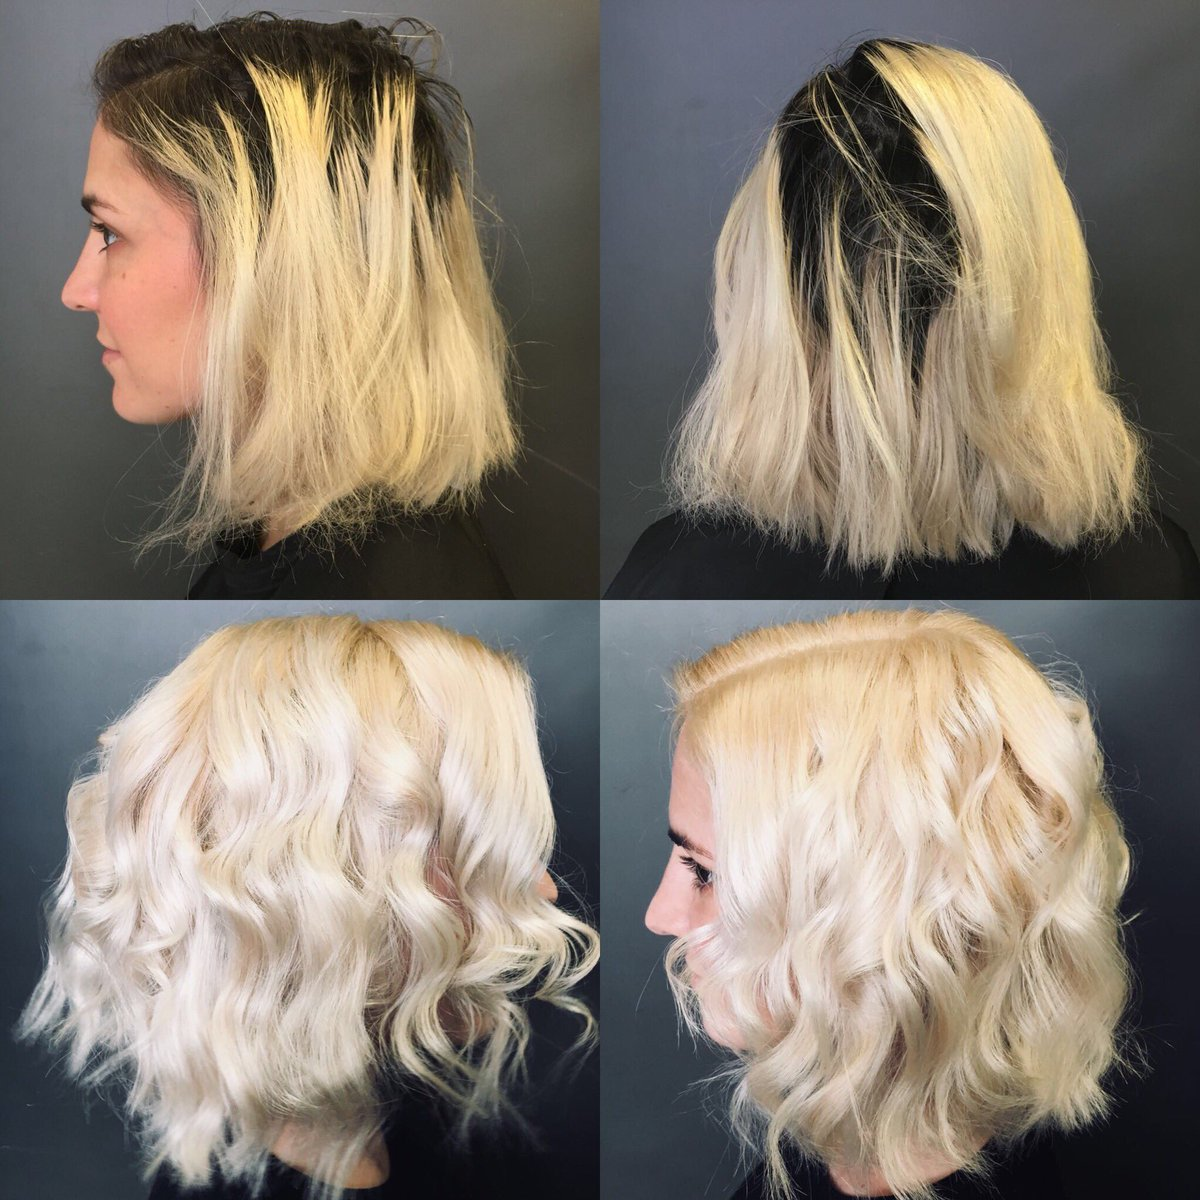 London Hair Academy On Twitter Fabulous Before And After Bleach